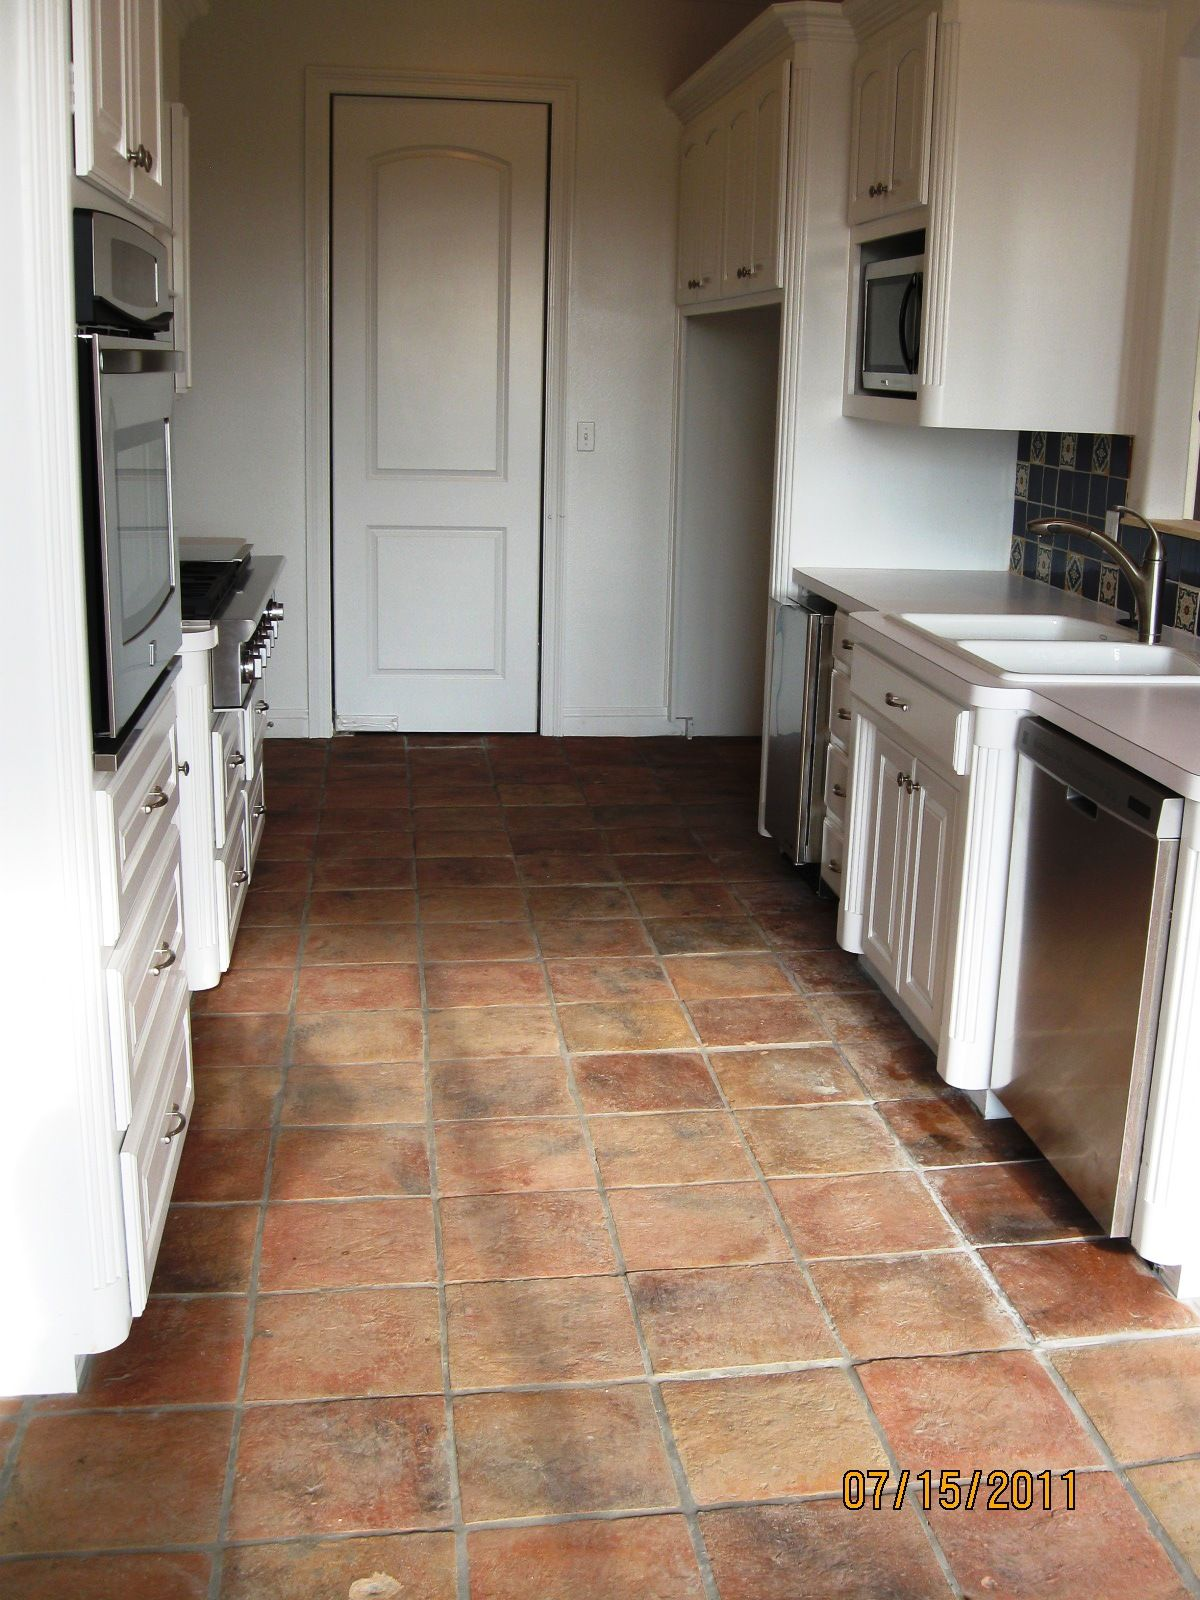 Kitchen Floor Stone Tiles Antique Terracotta Saltillo Tile Really Adds To The Appeal Of This